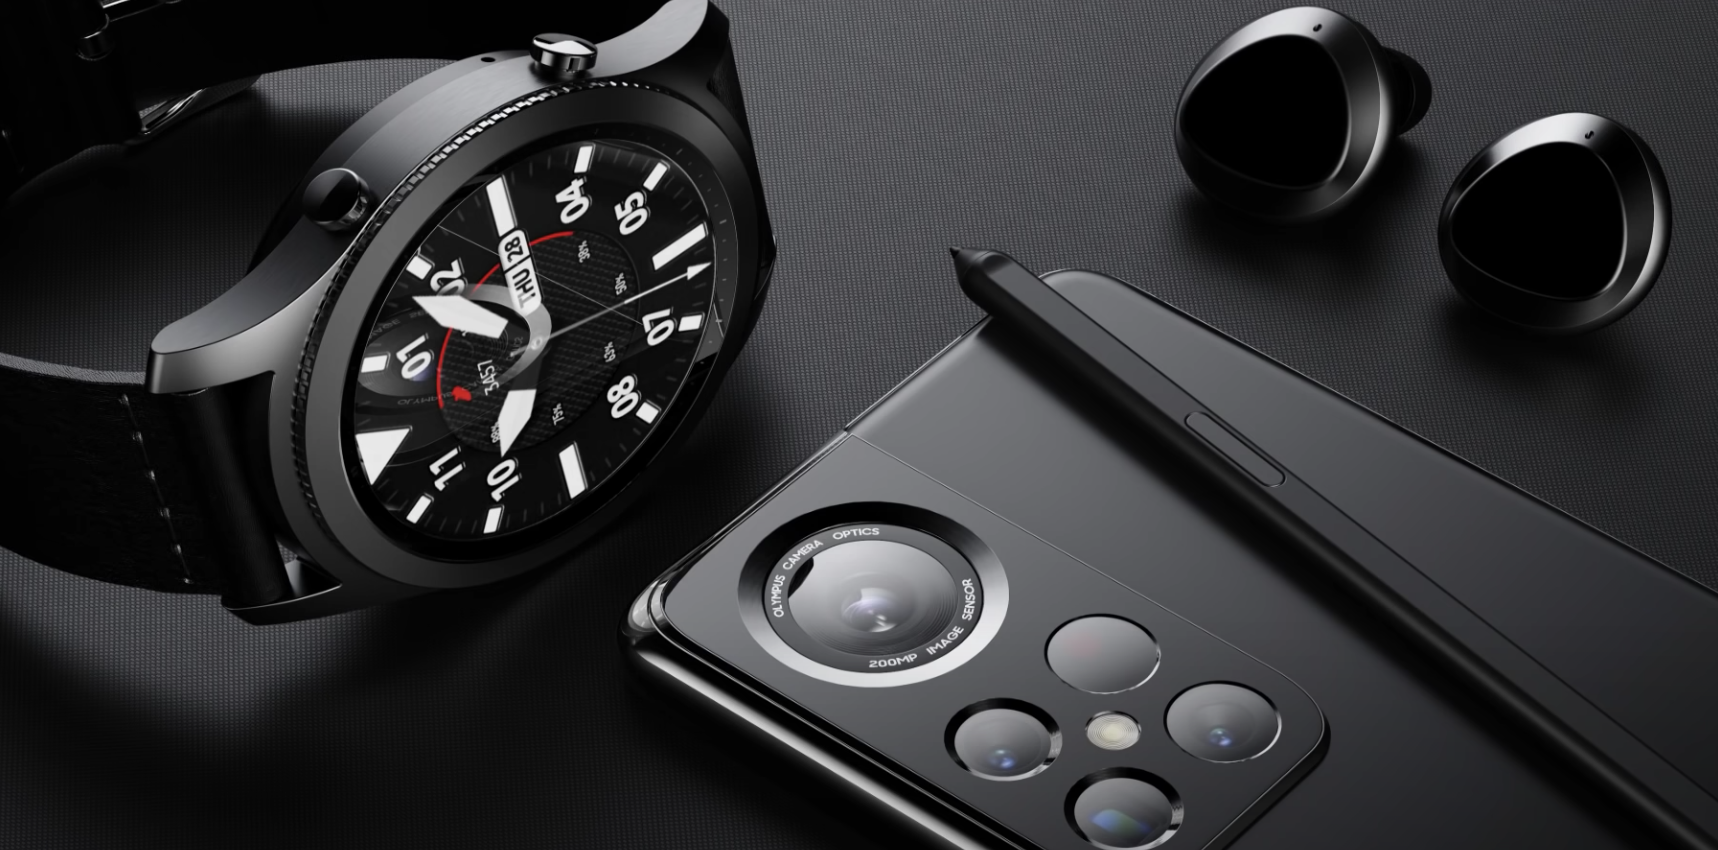 5 exciting phones to watch for this year: iPhone 13, Galaxy S22, Pixel 6, Surface Duo 2 and more